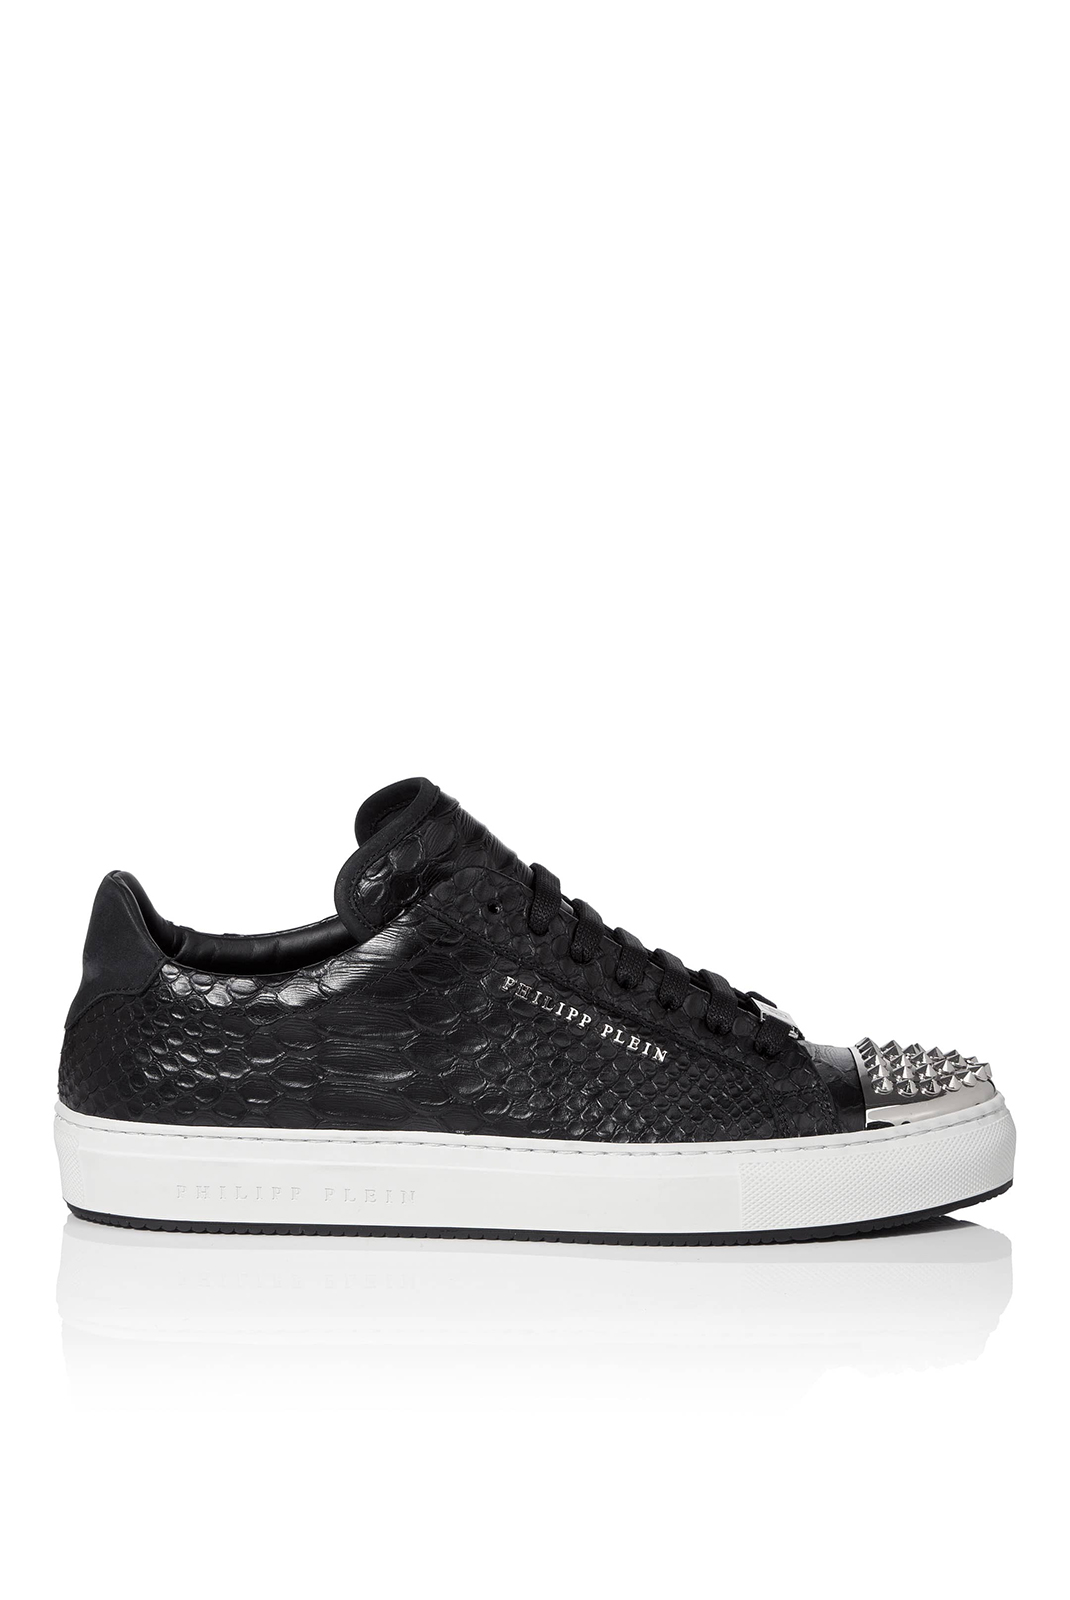 Baskets / Sport  Philipp plein MSC0468 WESTWOOD BLACK/NICKEL